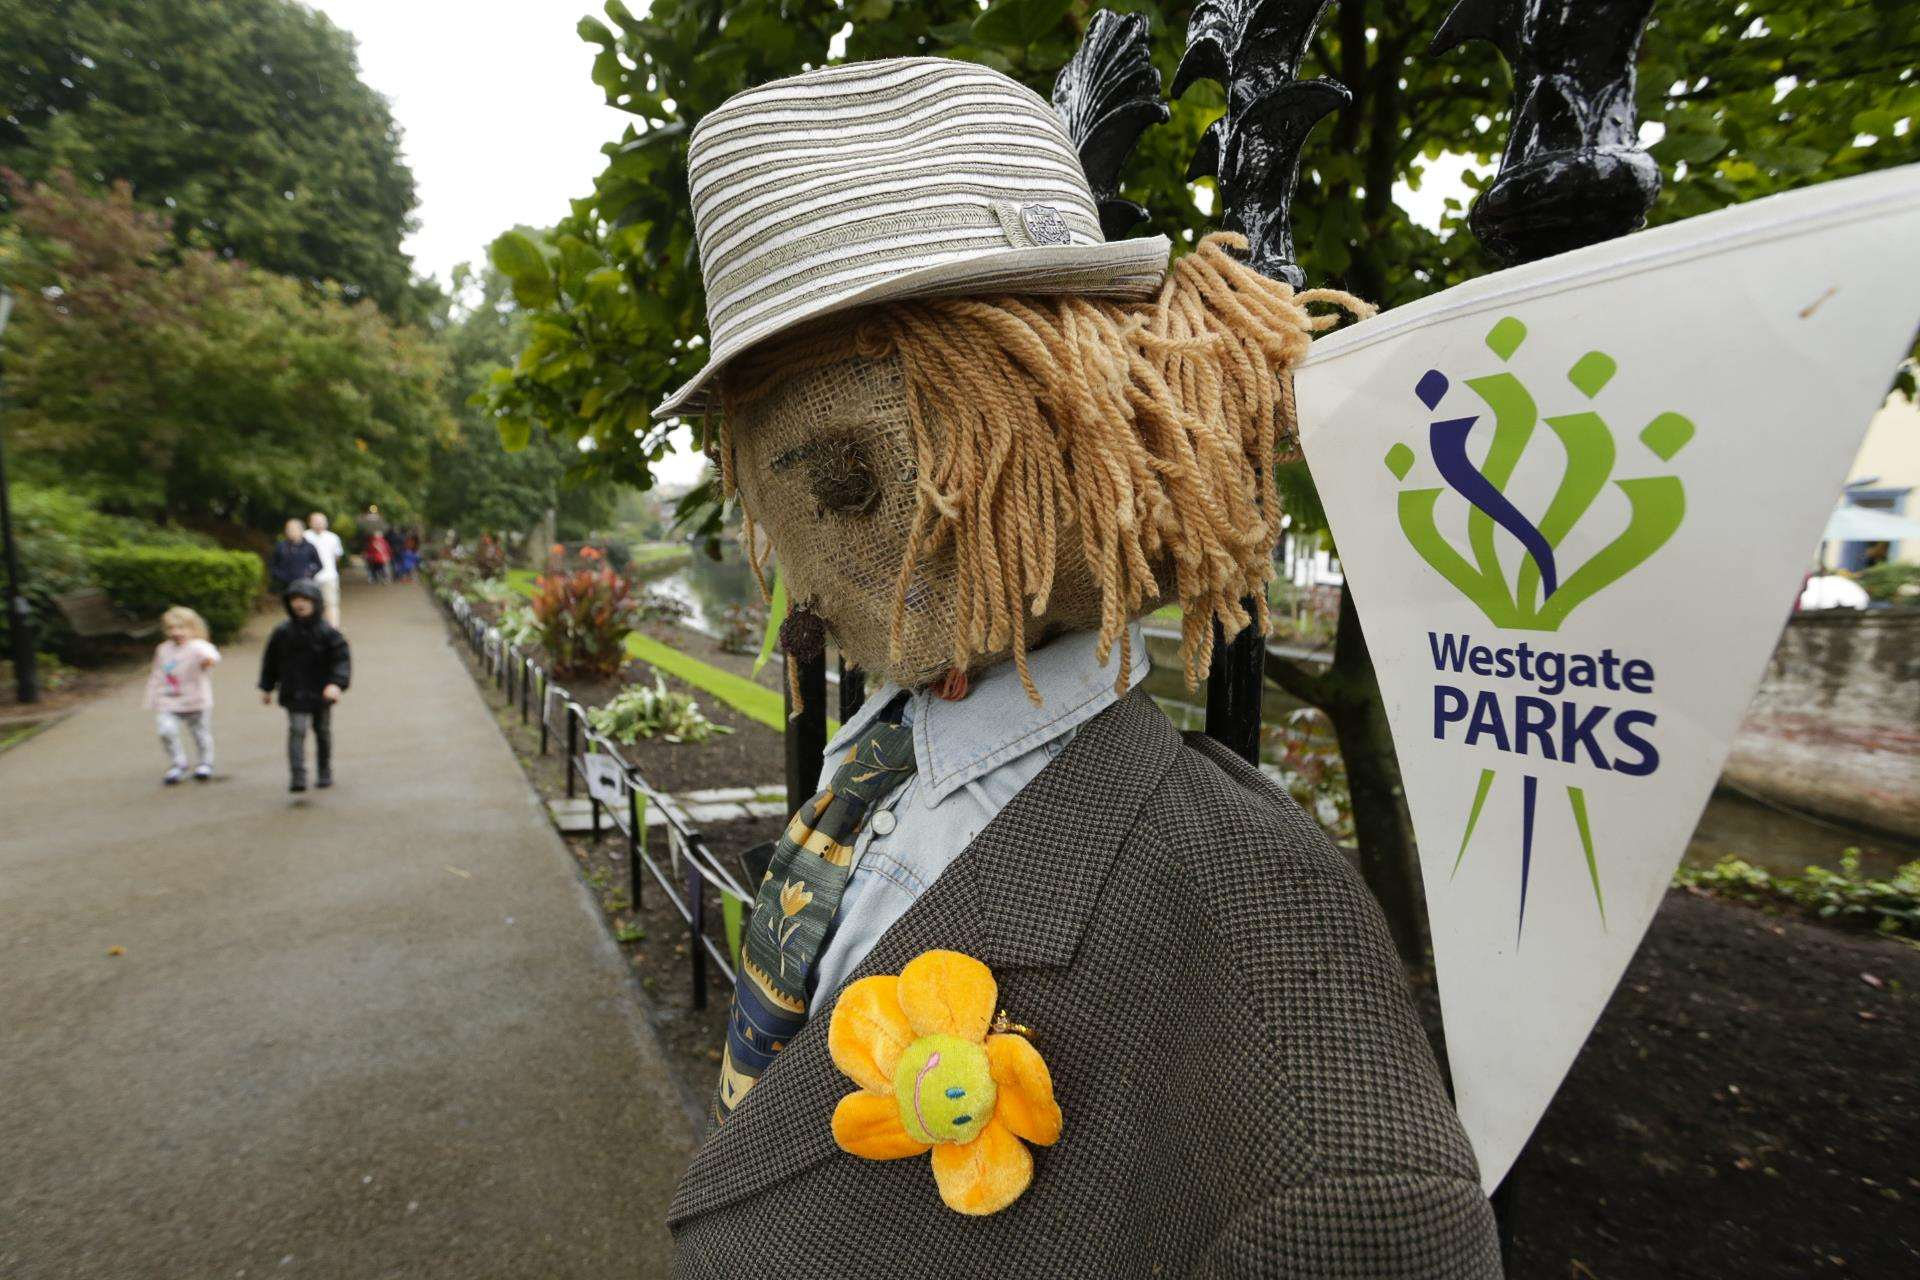 The Westgate Parks Scarecrow Trail is a popular event and brings hundreds to the park